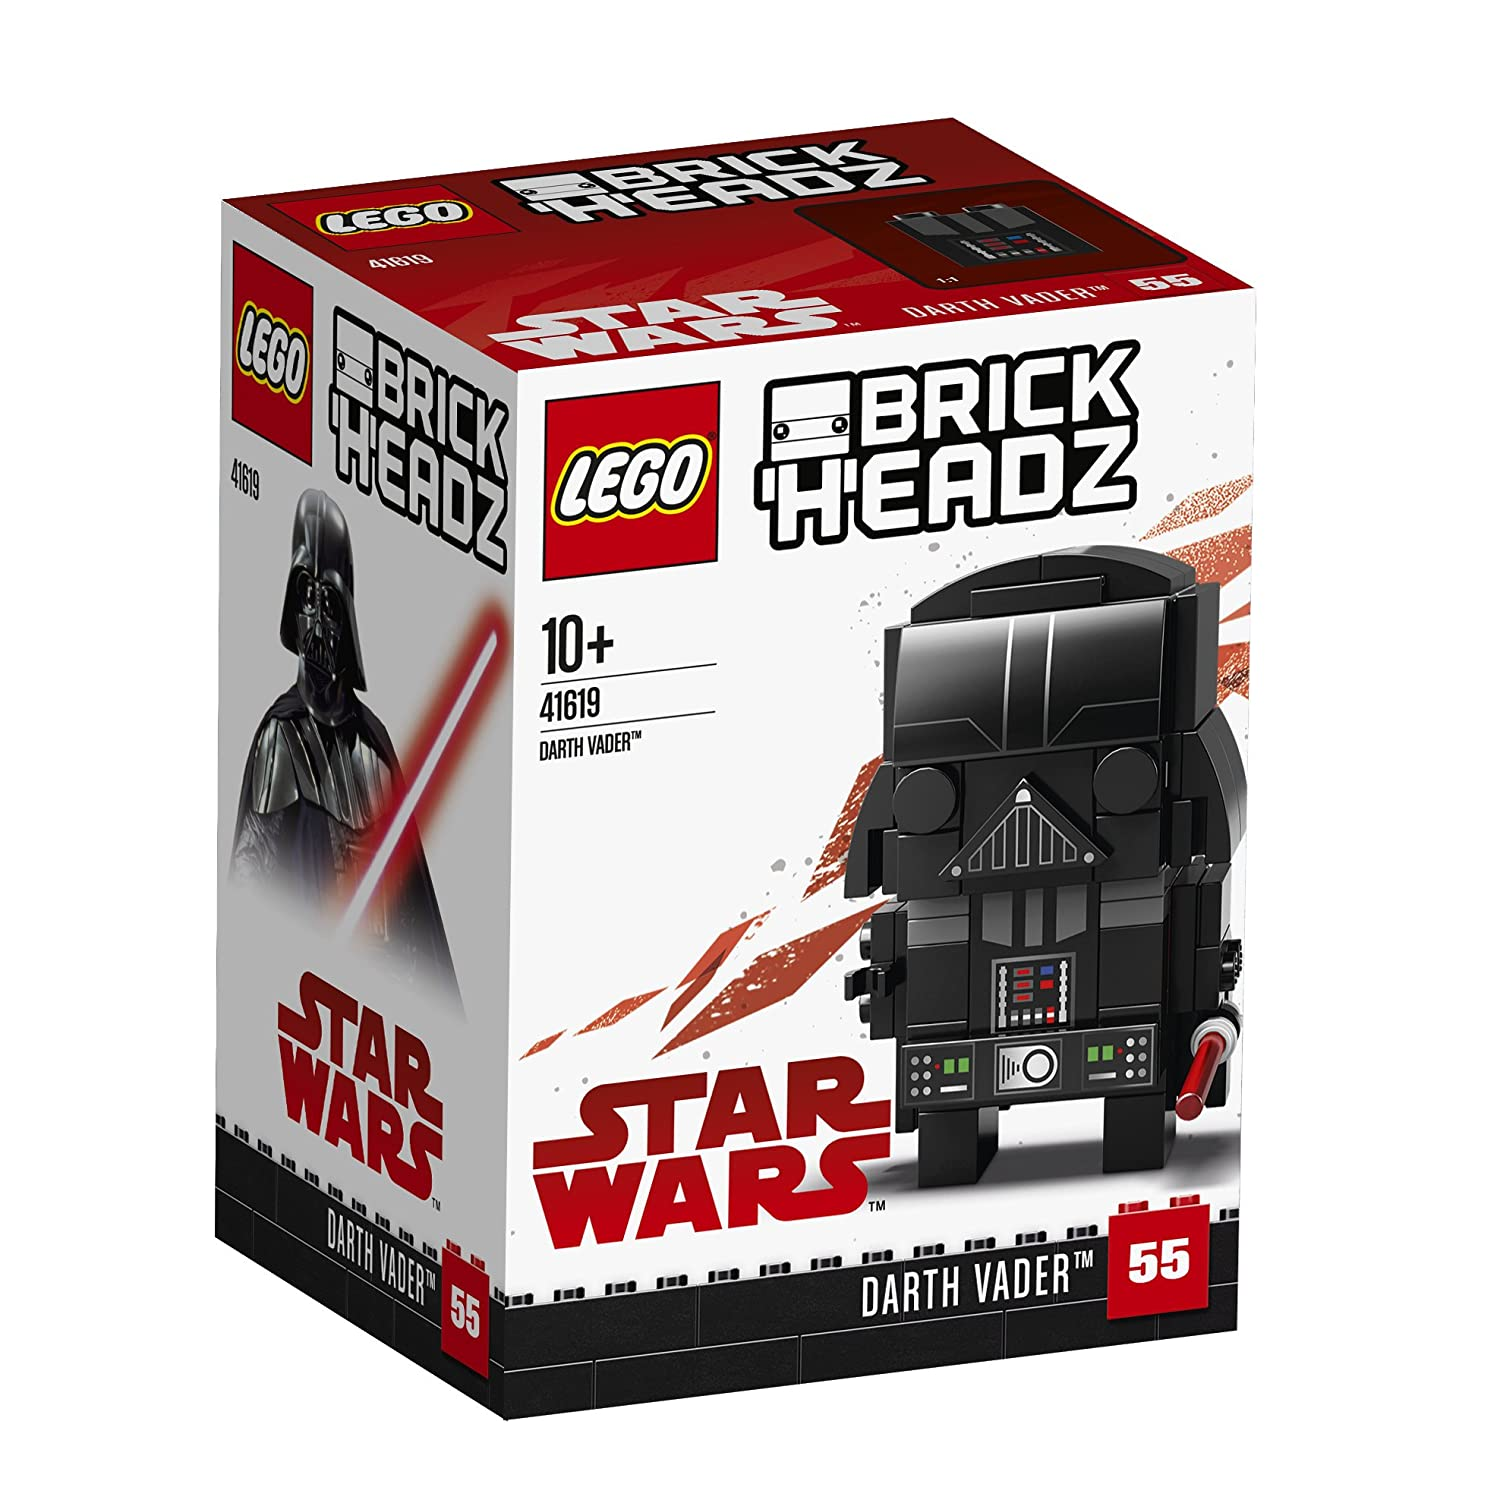 LEGO 41619 Brickheadz Darth Vader Star Wars